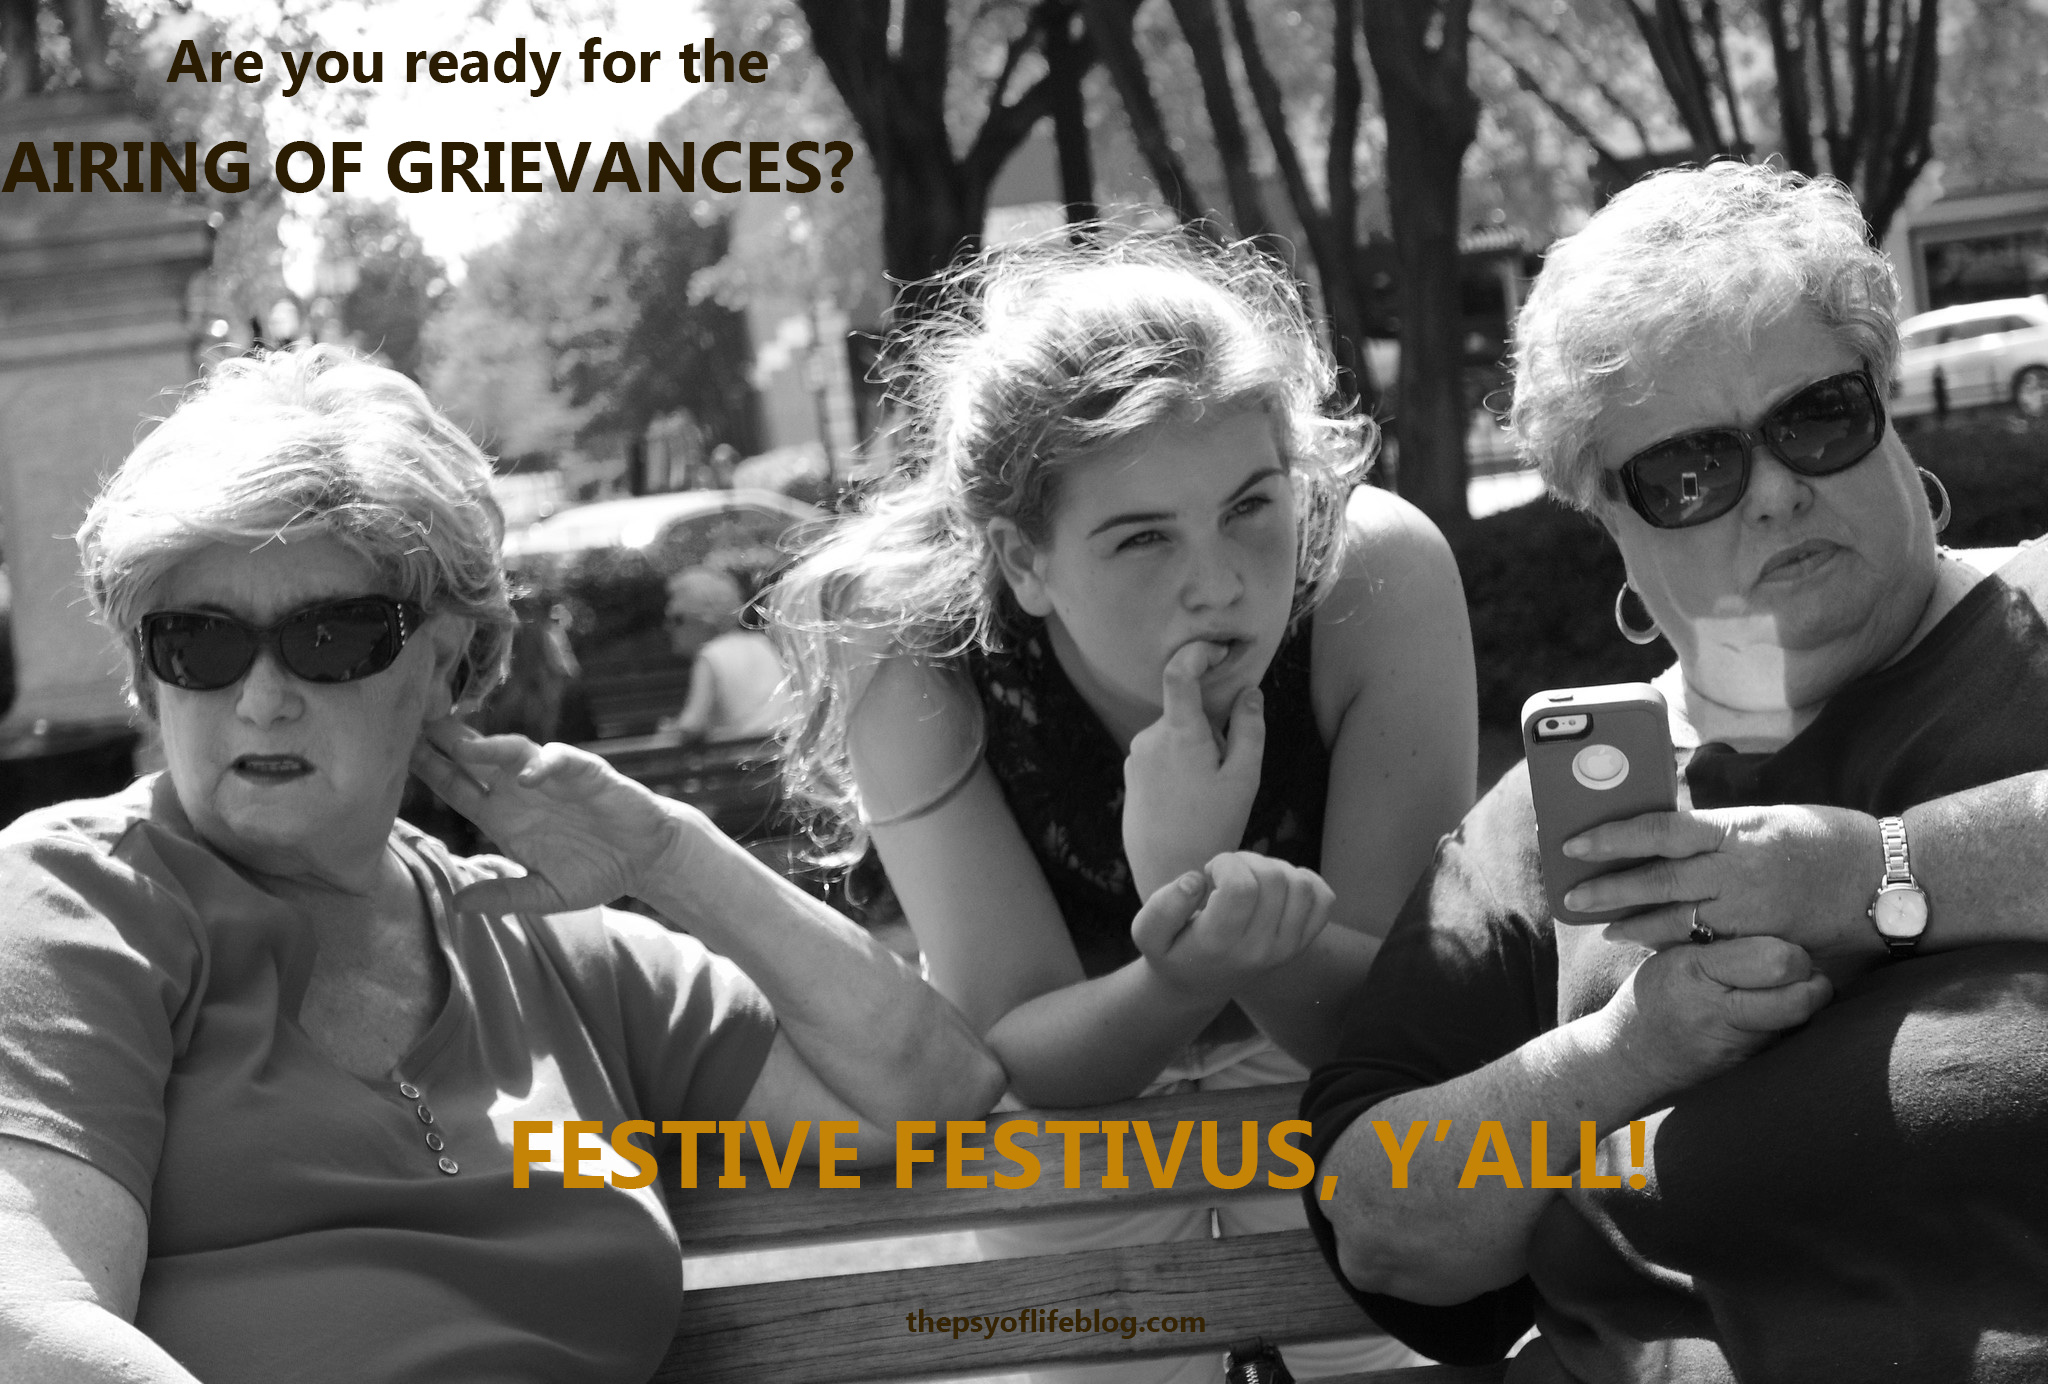 Festivus Card: Airing of Grievances